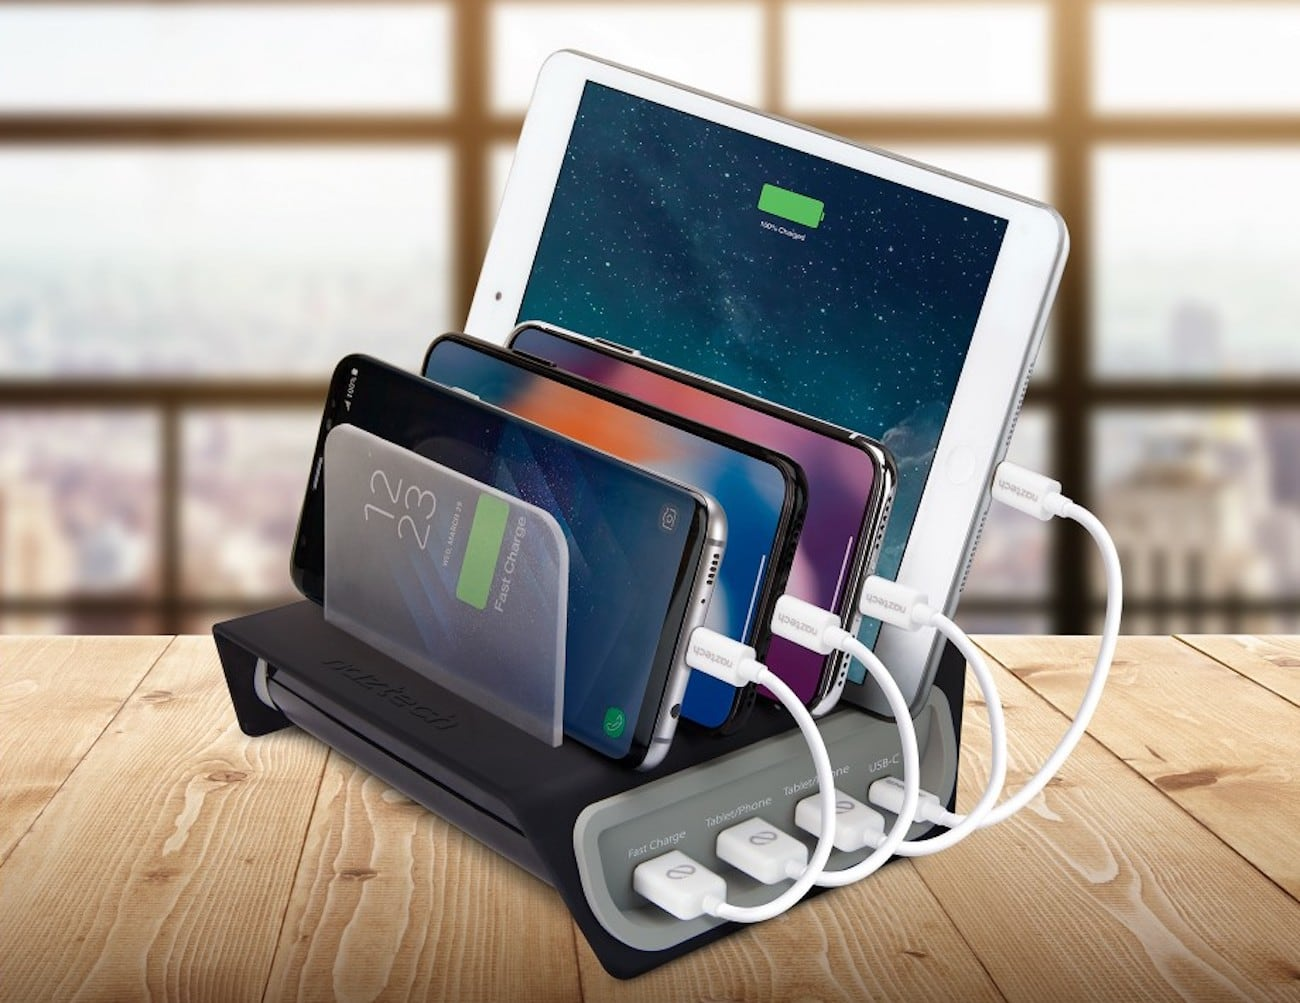 Power Hub4 Adaptive Fast Charging Station simultaneously charges four devices